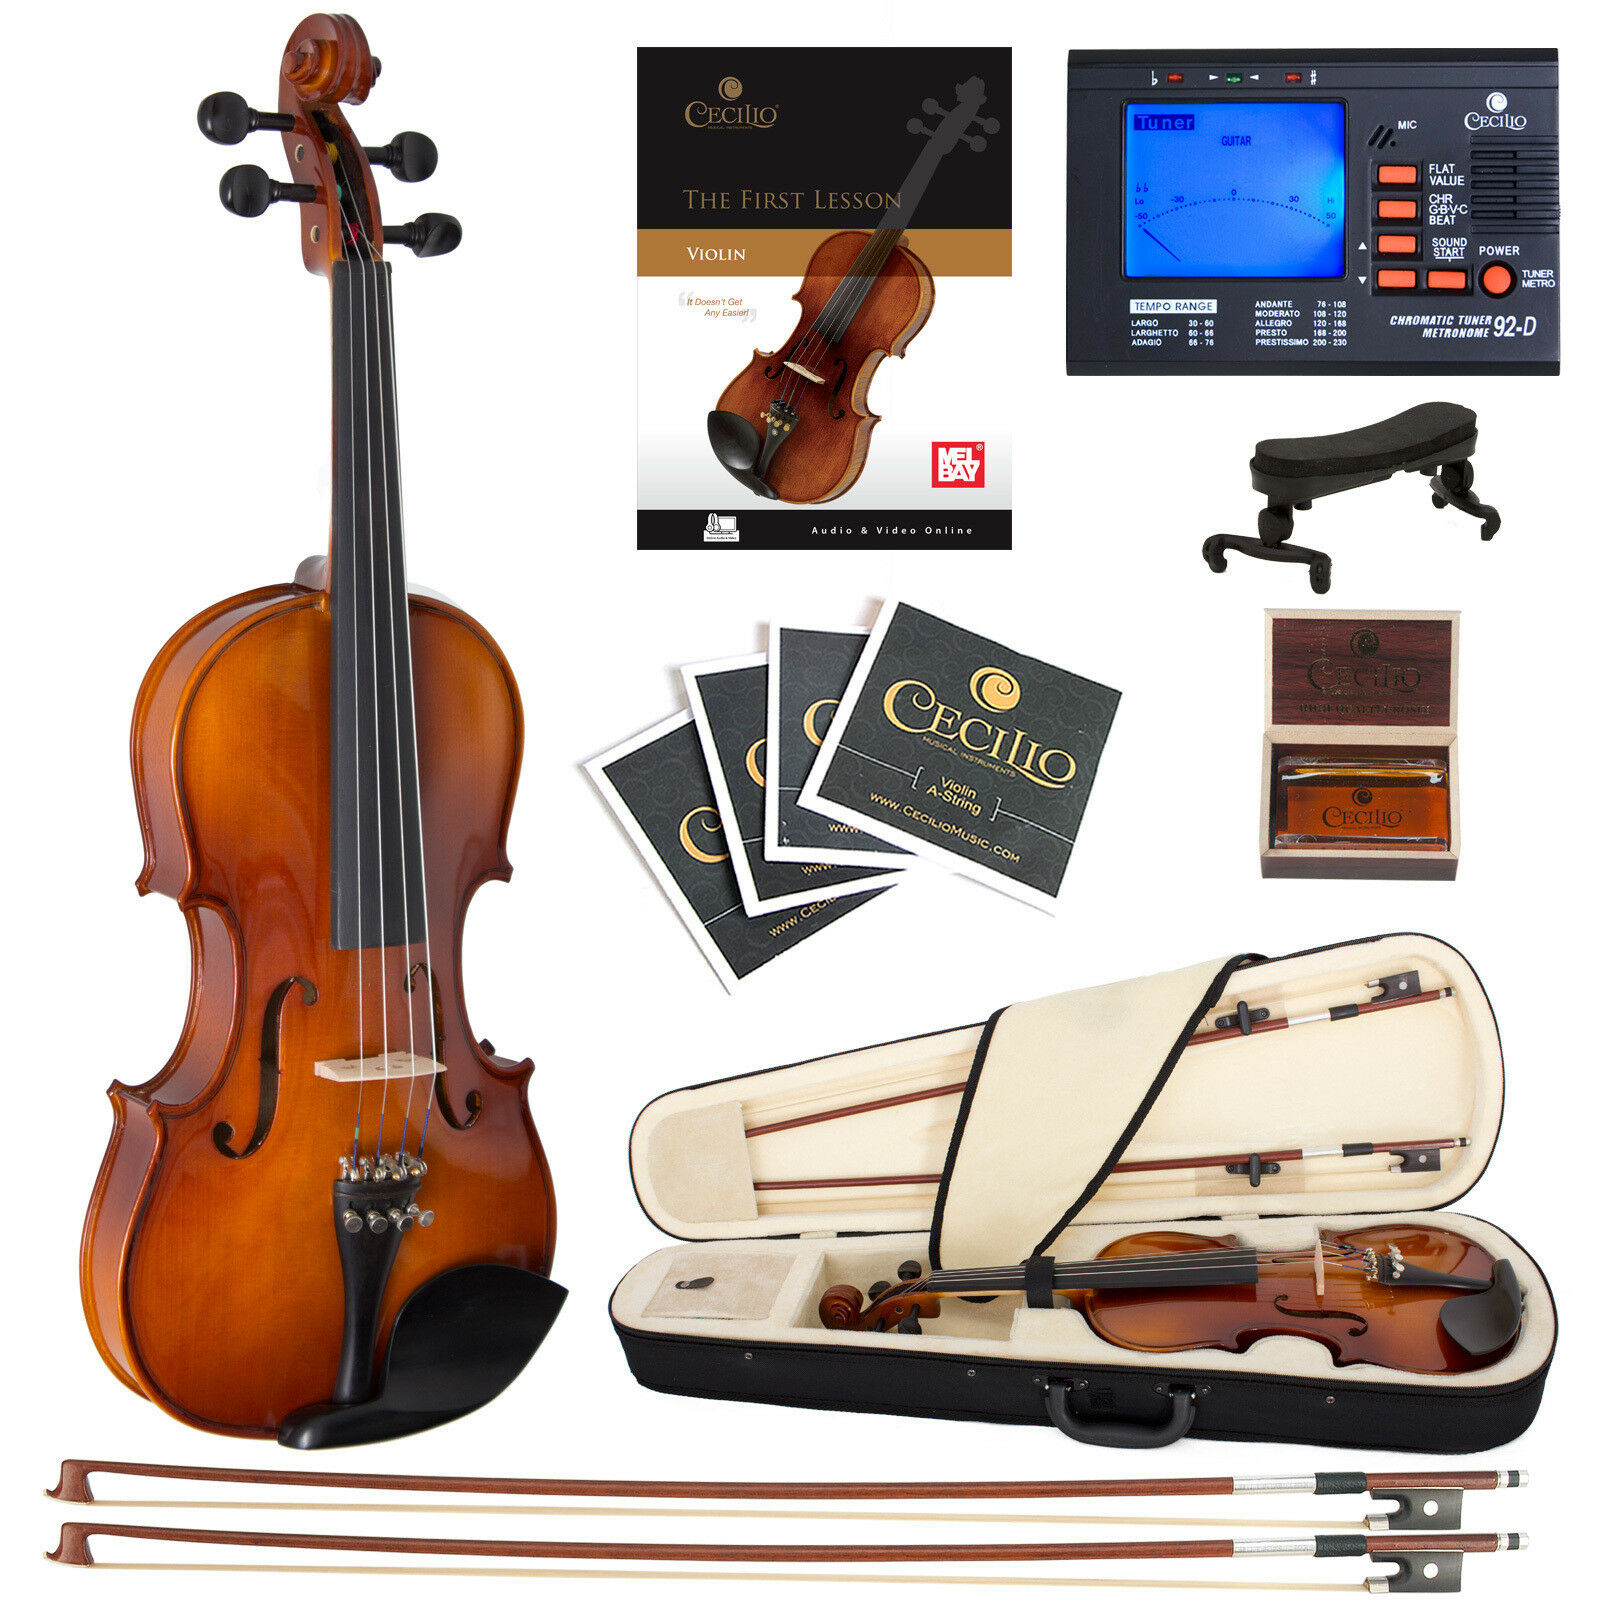 Cecilio 3 4 CVN-320L Left Handed Ebony Violin +Book Video+Tuner+Case